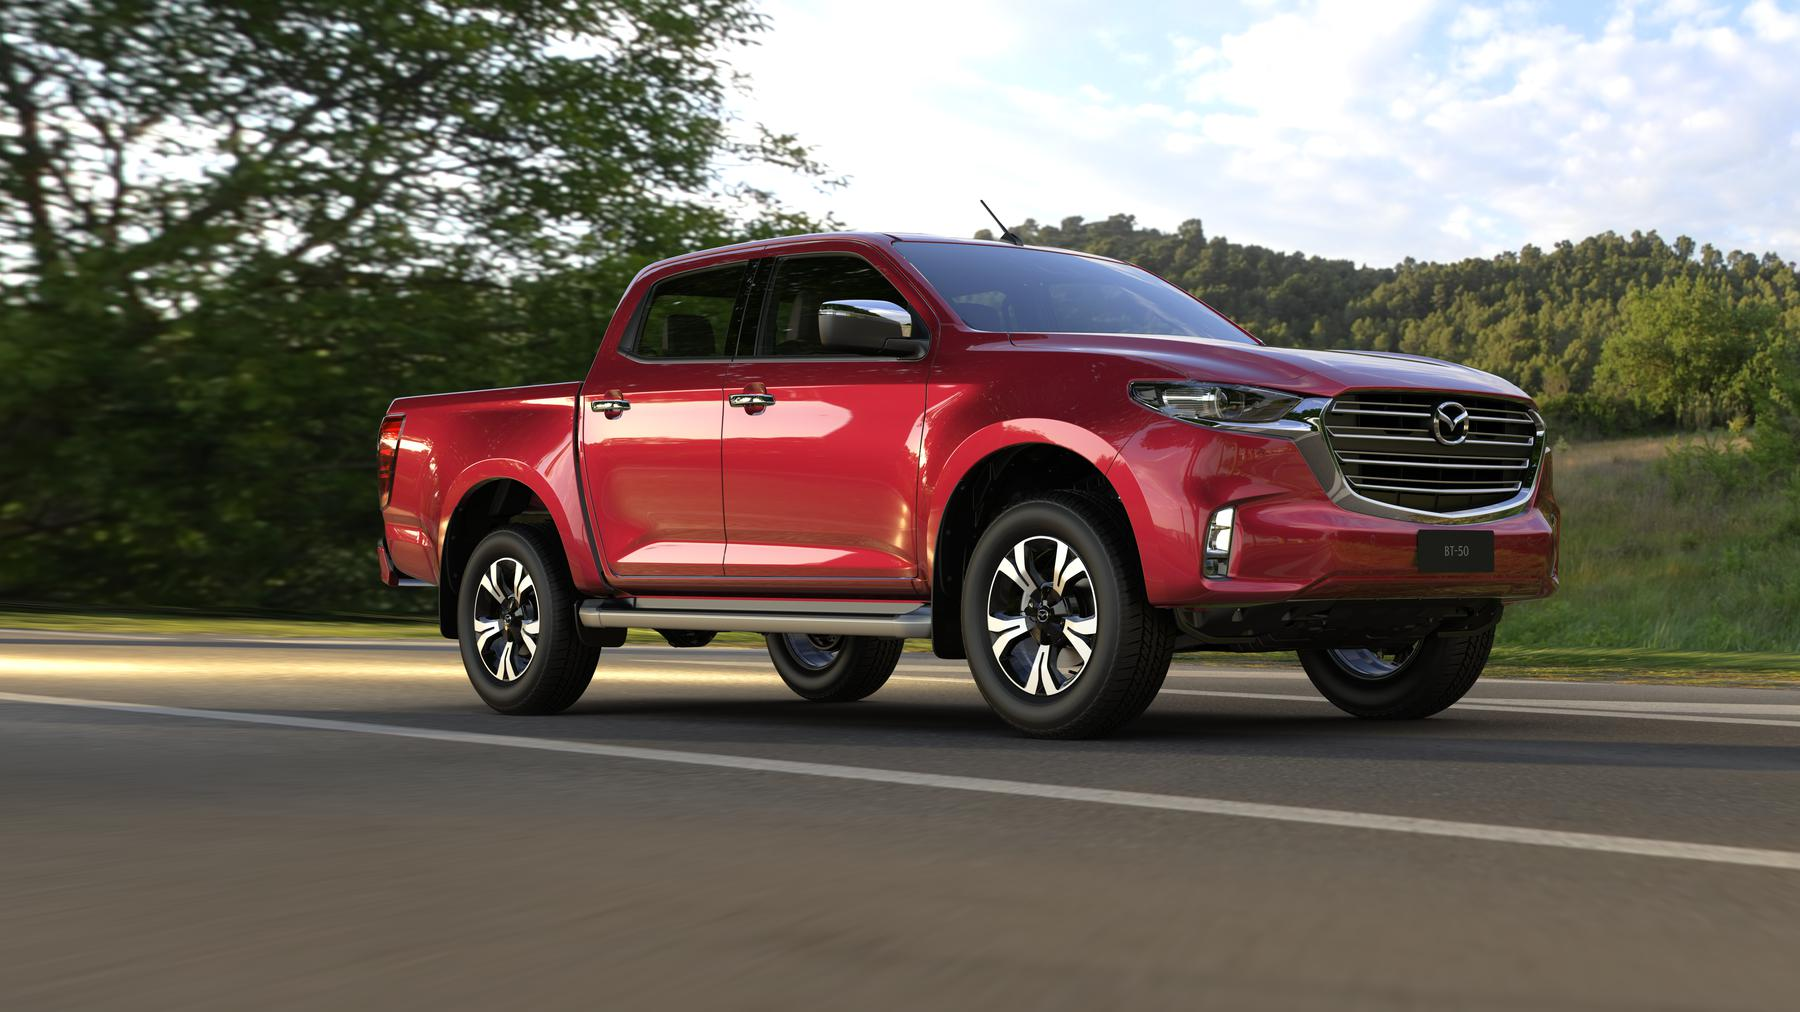 Mazda South Africa has finally let their new BT-50 bakkie out of the paddocks and it's on sale here in SA.